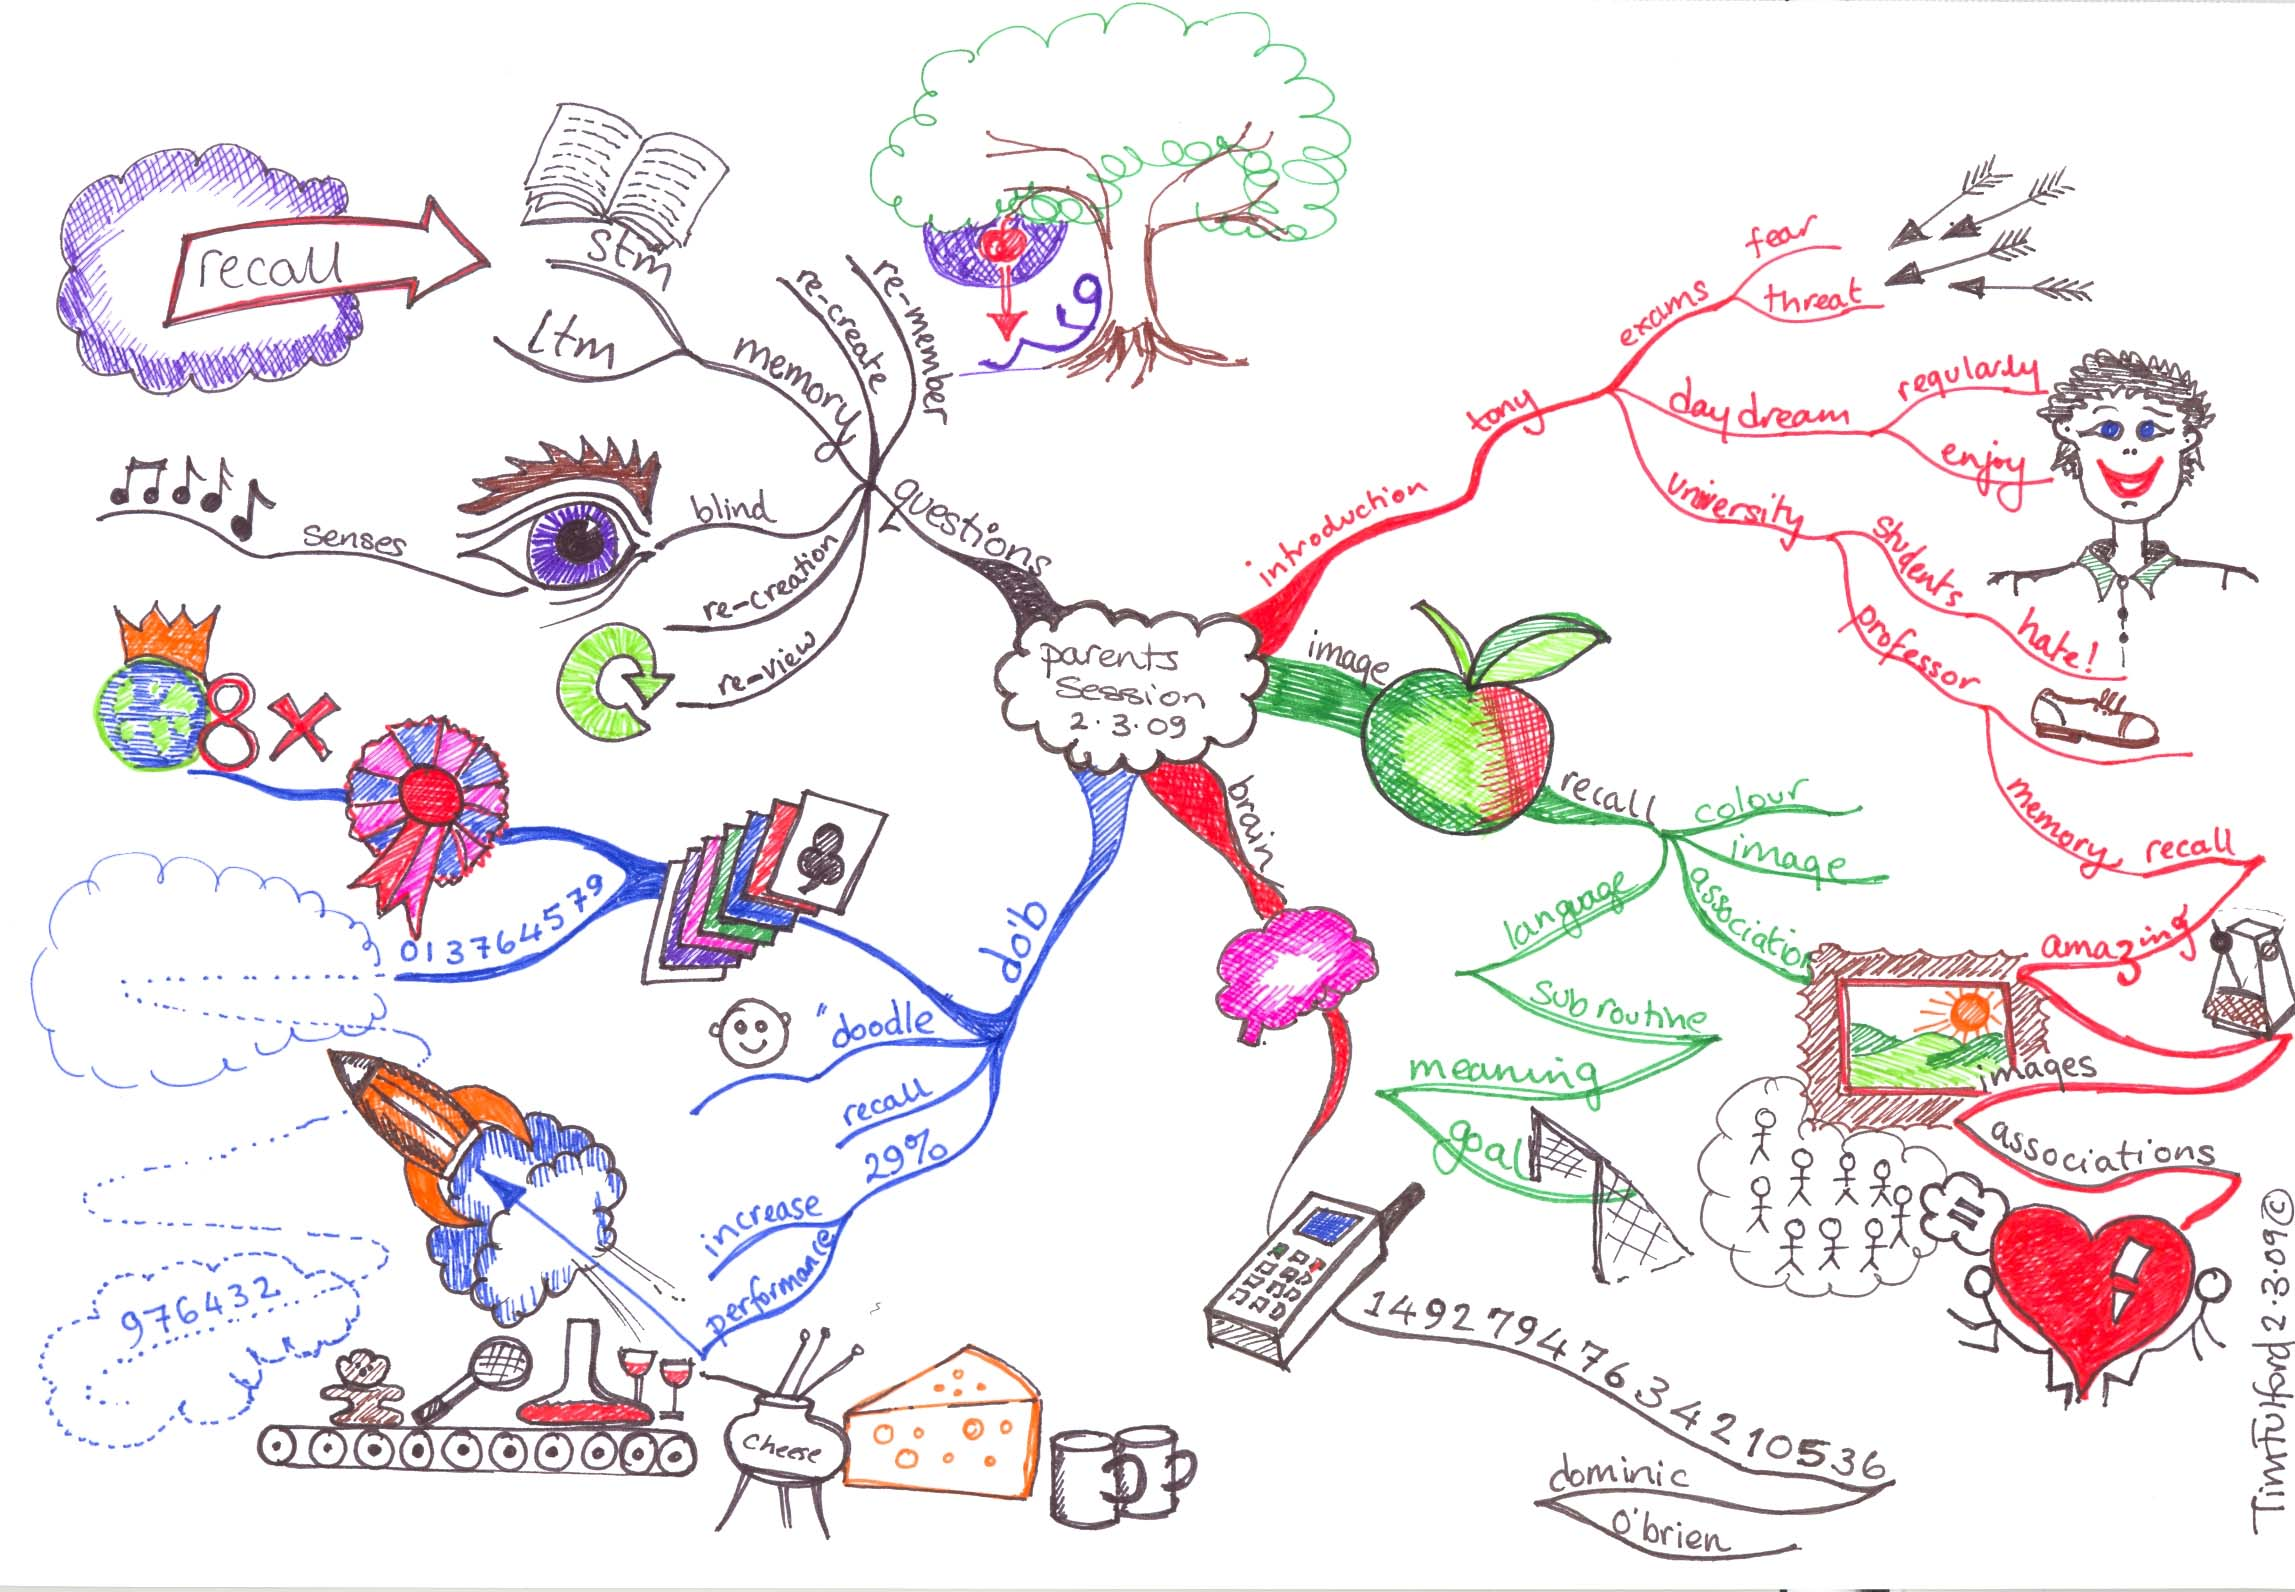 Buzan mind mapping creative thinking page 2 parents session3 gumiabroncs Gallery